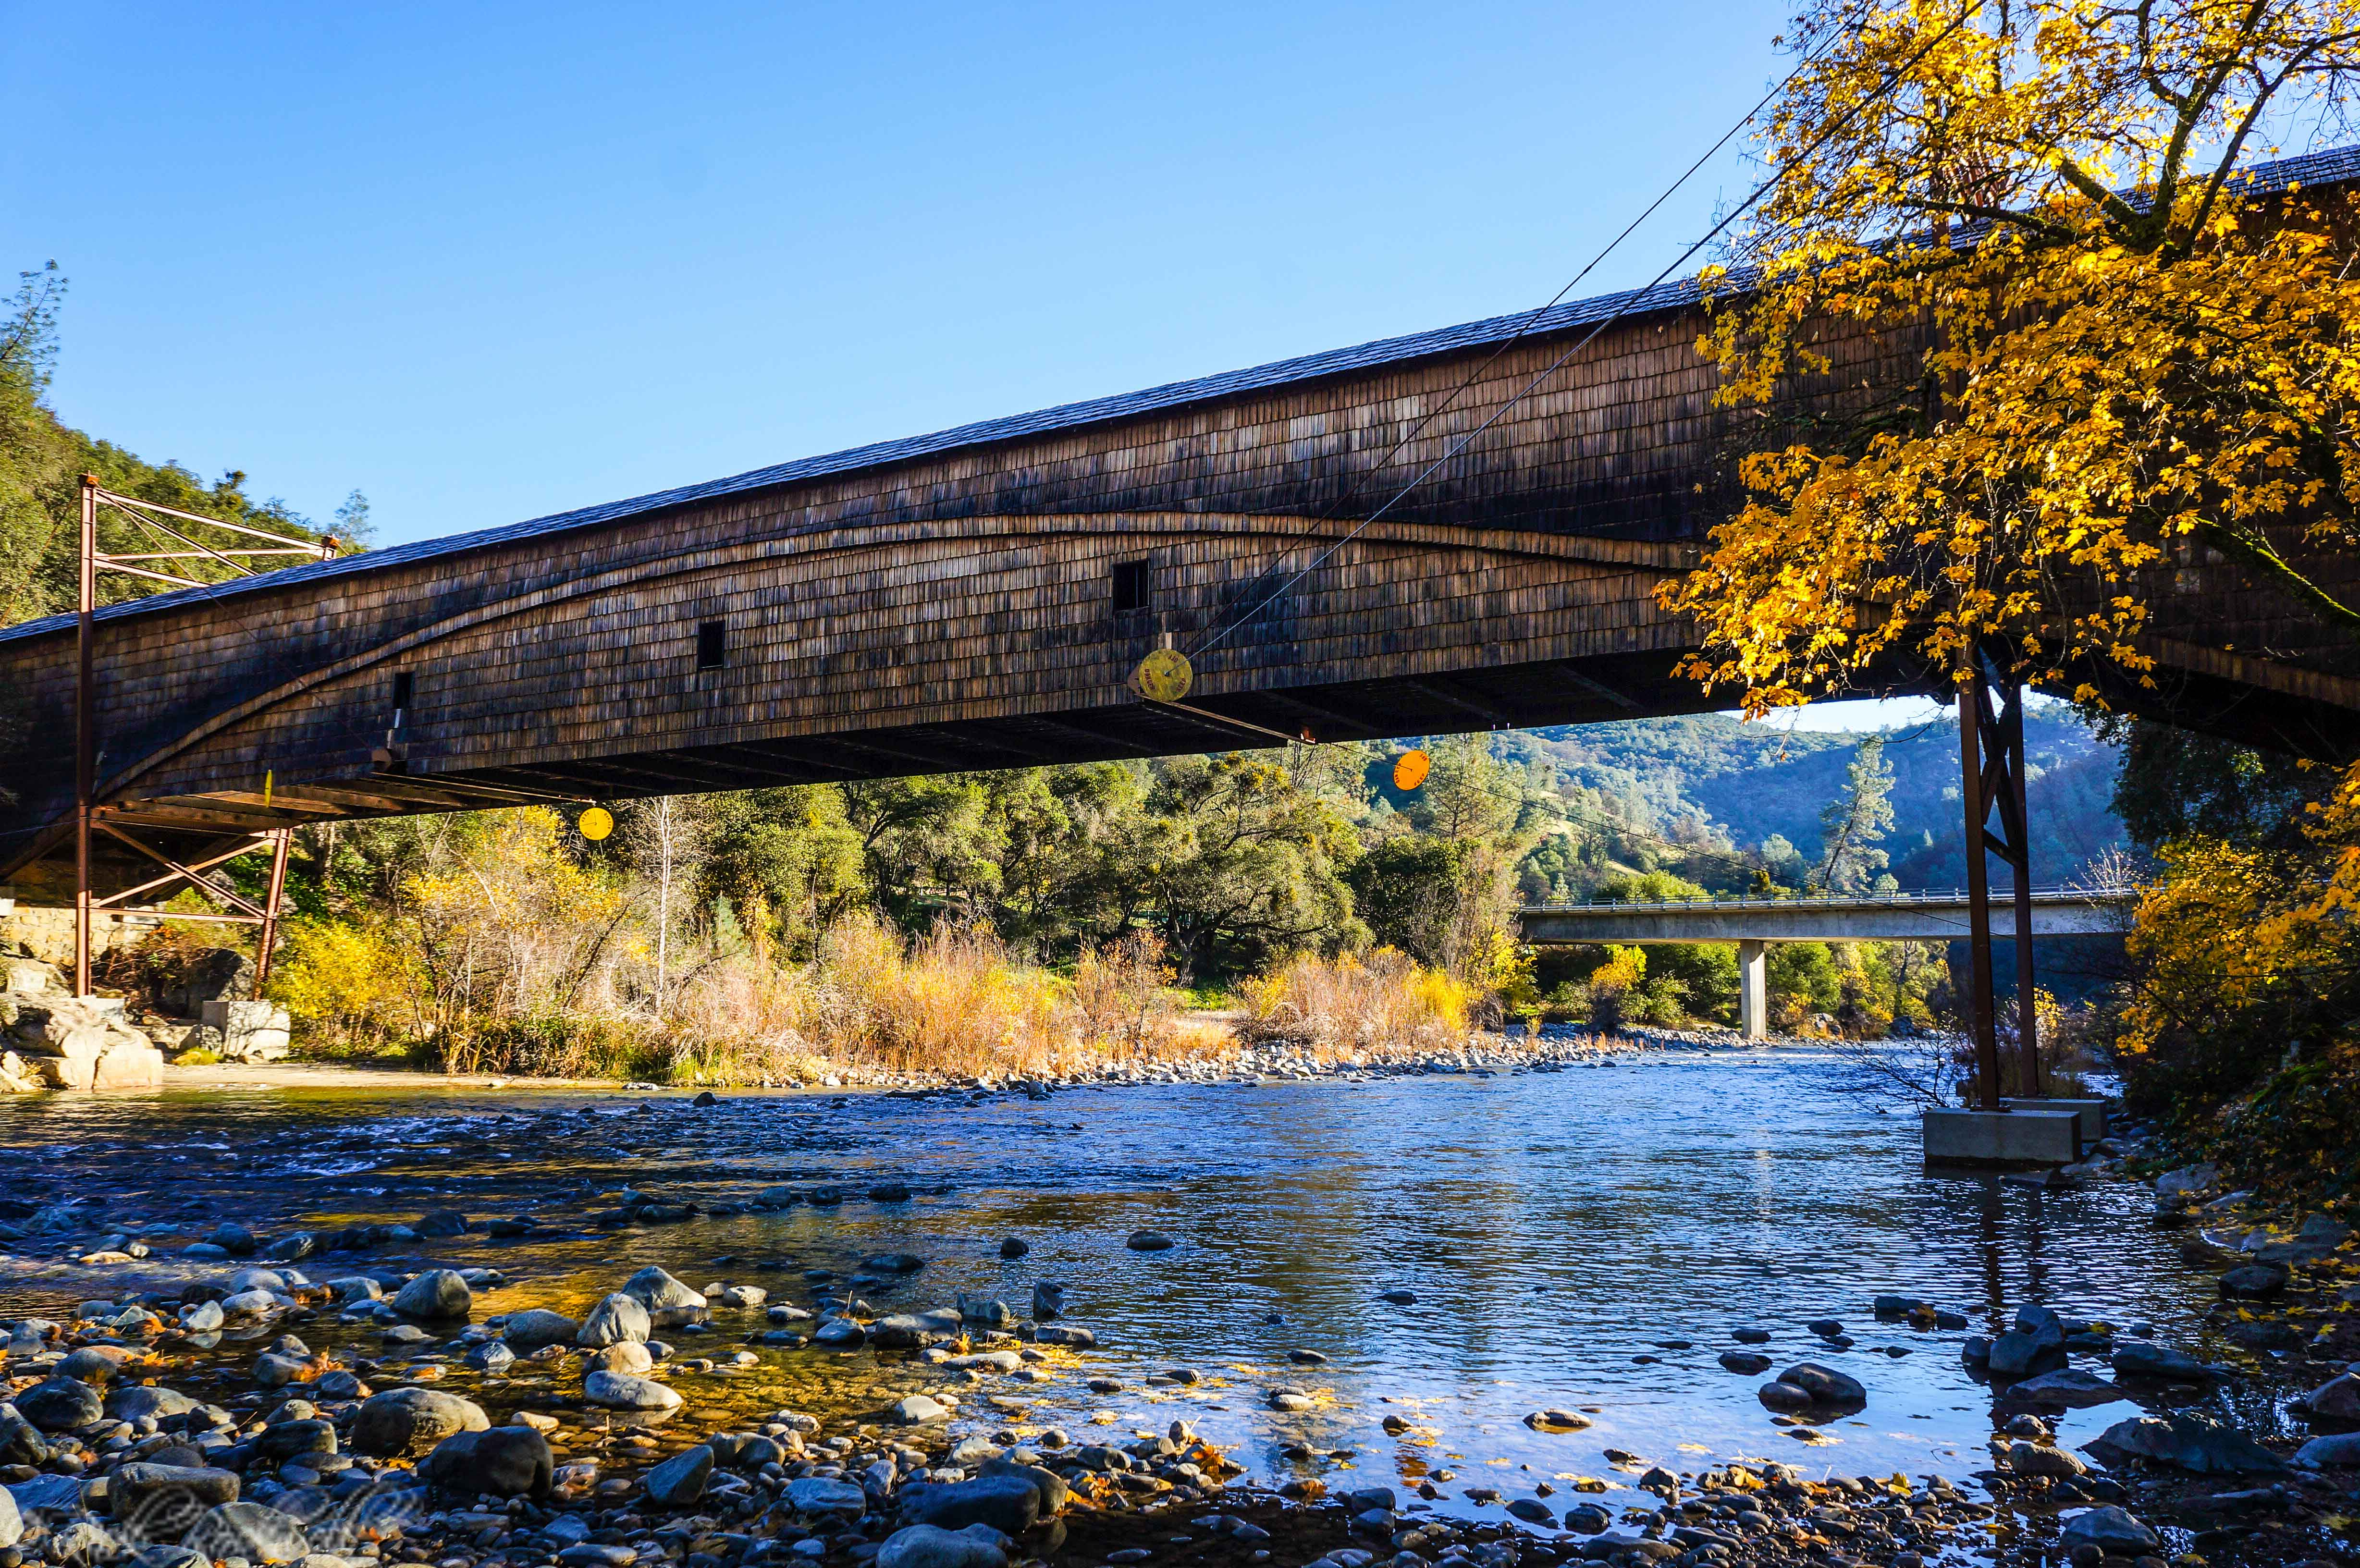 Photo of The Bridgeport Covered Bridge: a National Landmark spanning the South Yuba River